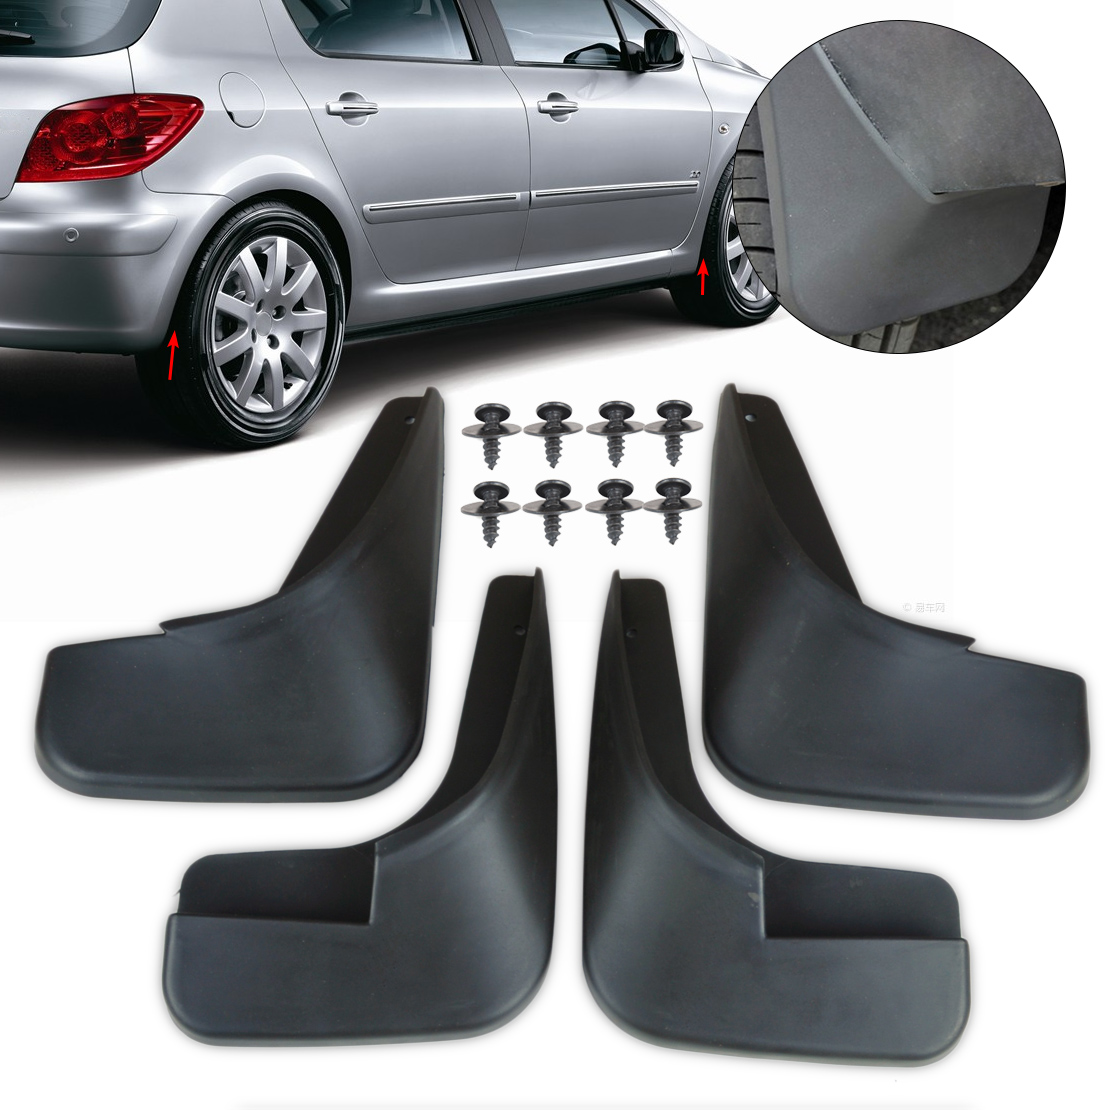 DWCX 4Pcs High Quality Rubber Mud Flaps Flap Splash Guards Mudguard Mudflaps Fenders For Peugeot 307 все цены